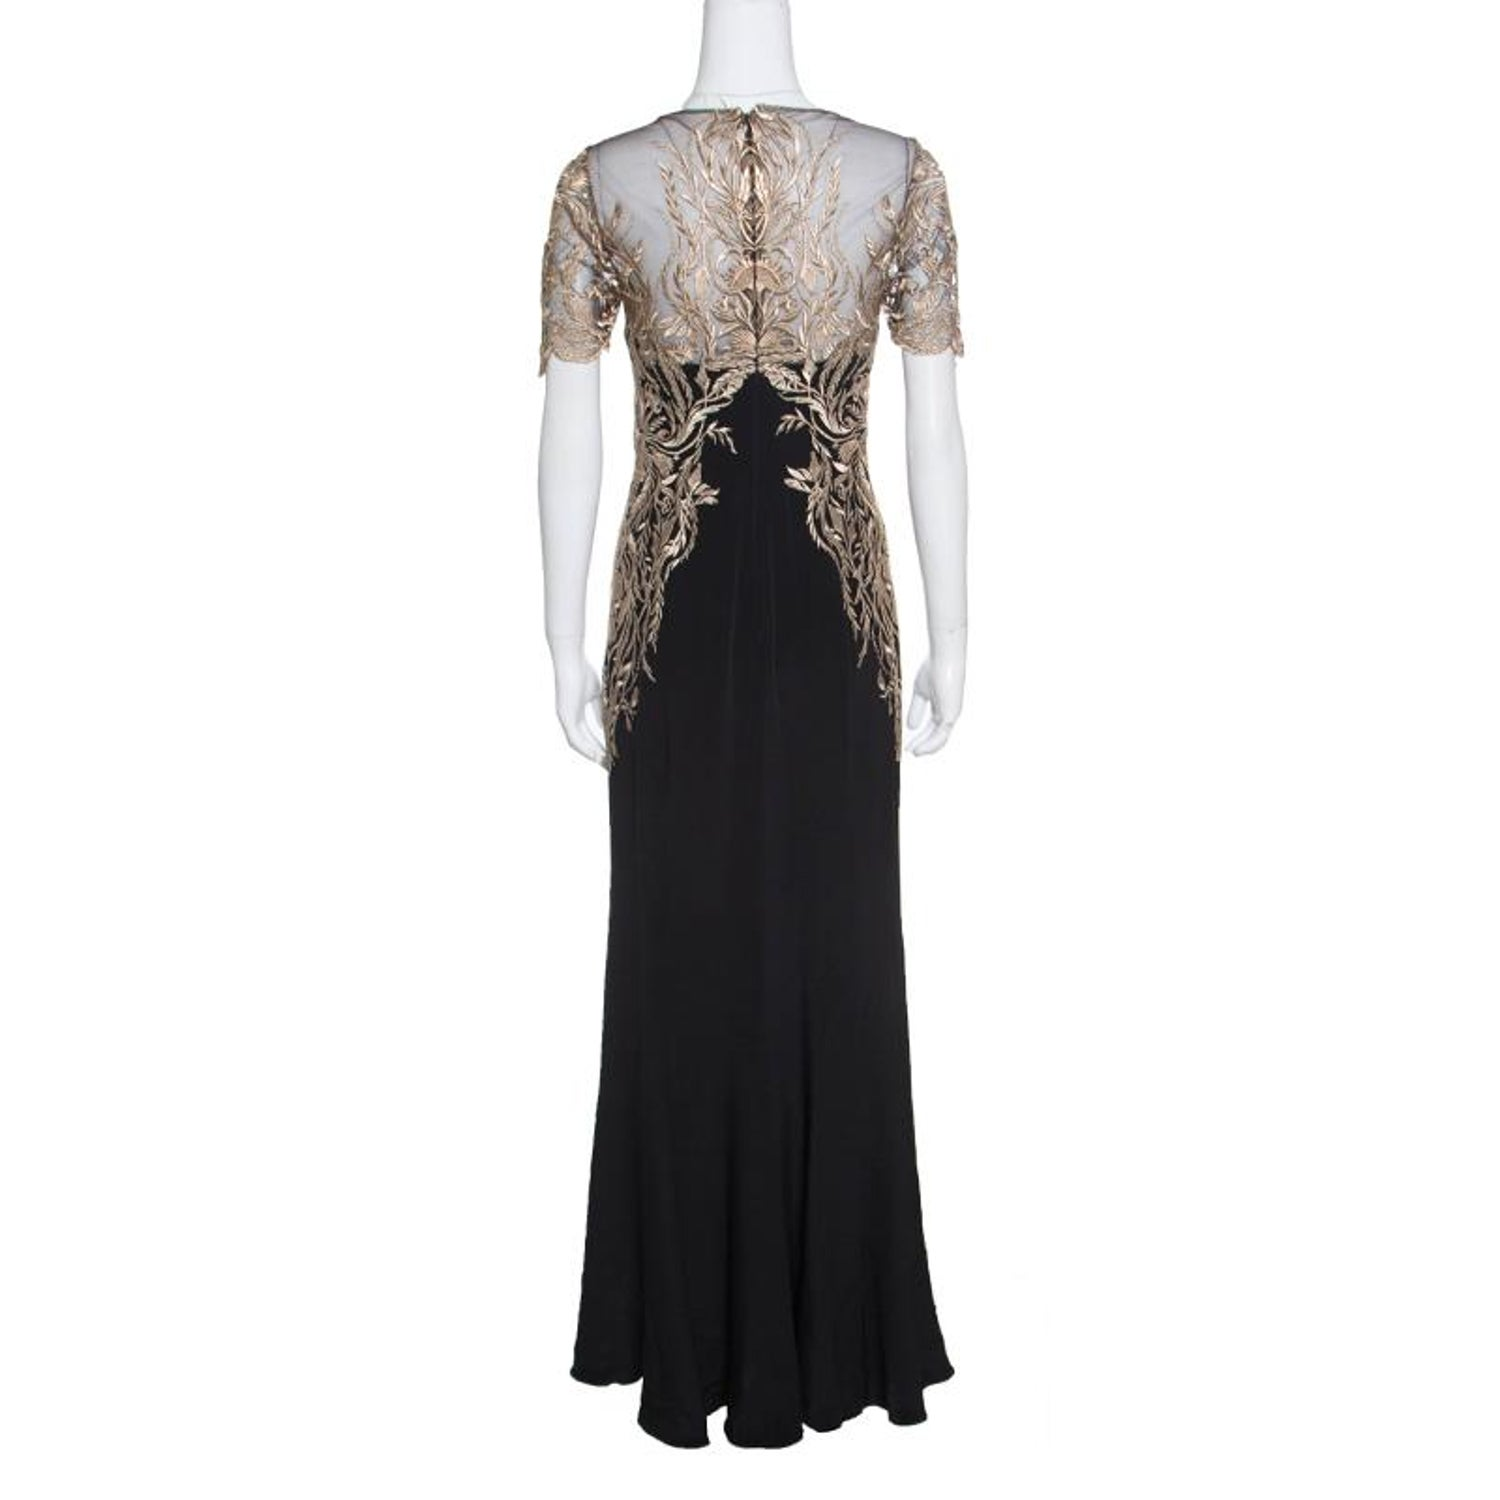 8cc8b812bbbe Notte by Marchesa Black Silk Lurex Floral Embroidered Evening Gown S For  Sale at 1stdibs